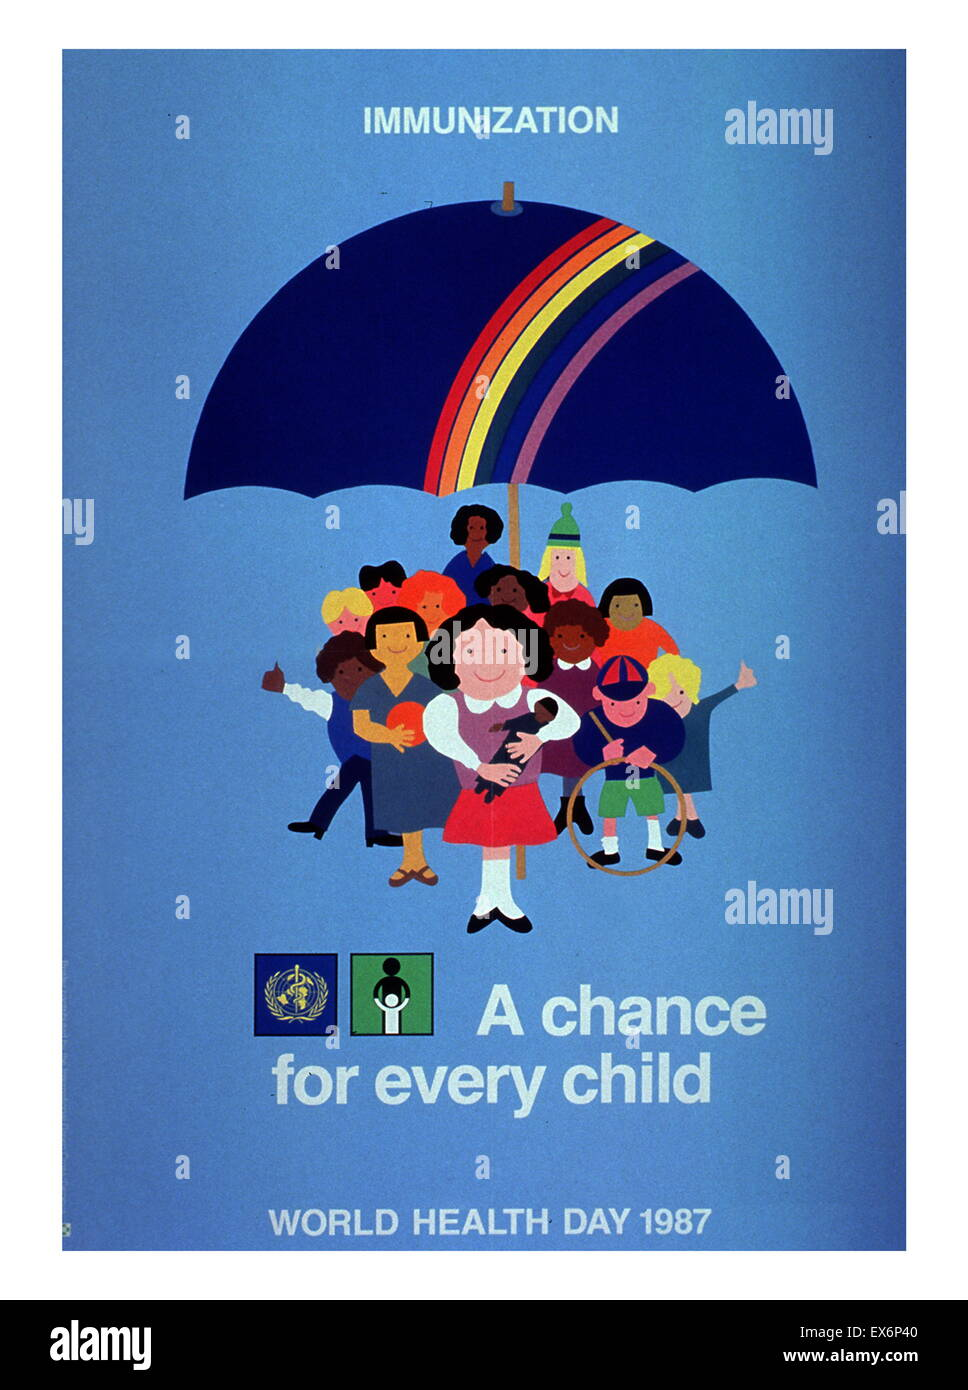 Immunization: A Chance For Every Child 1987 United Nations WHO Public health poster to raise awareness of immunization - Stock Image